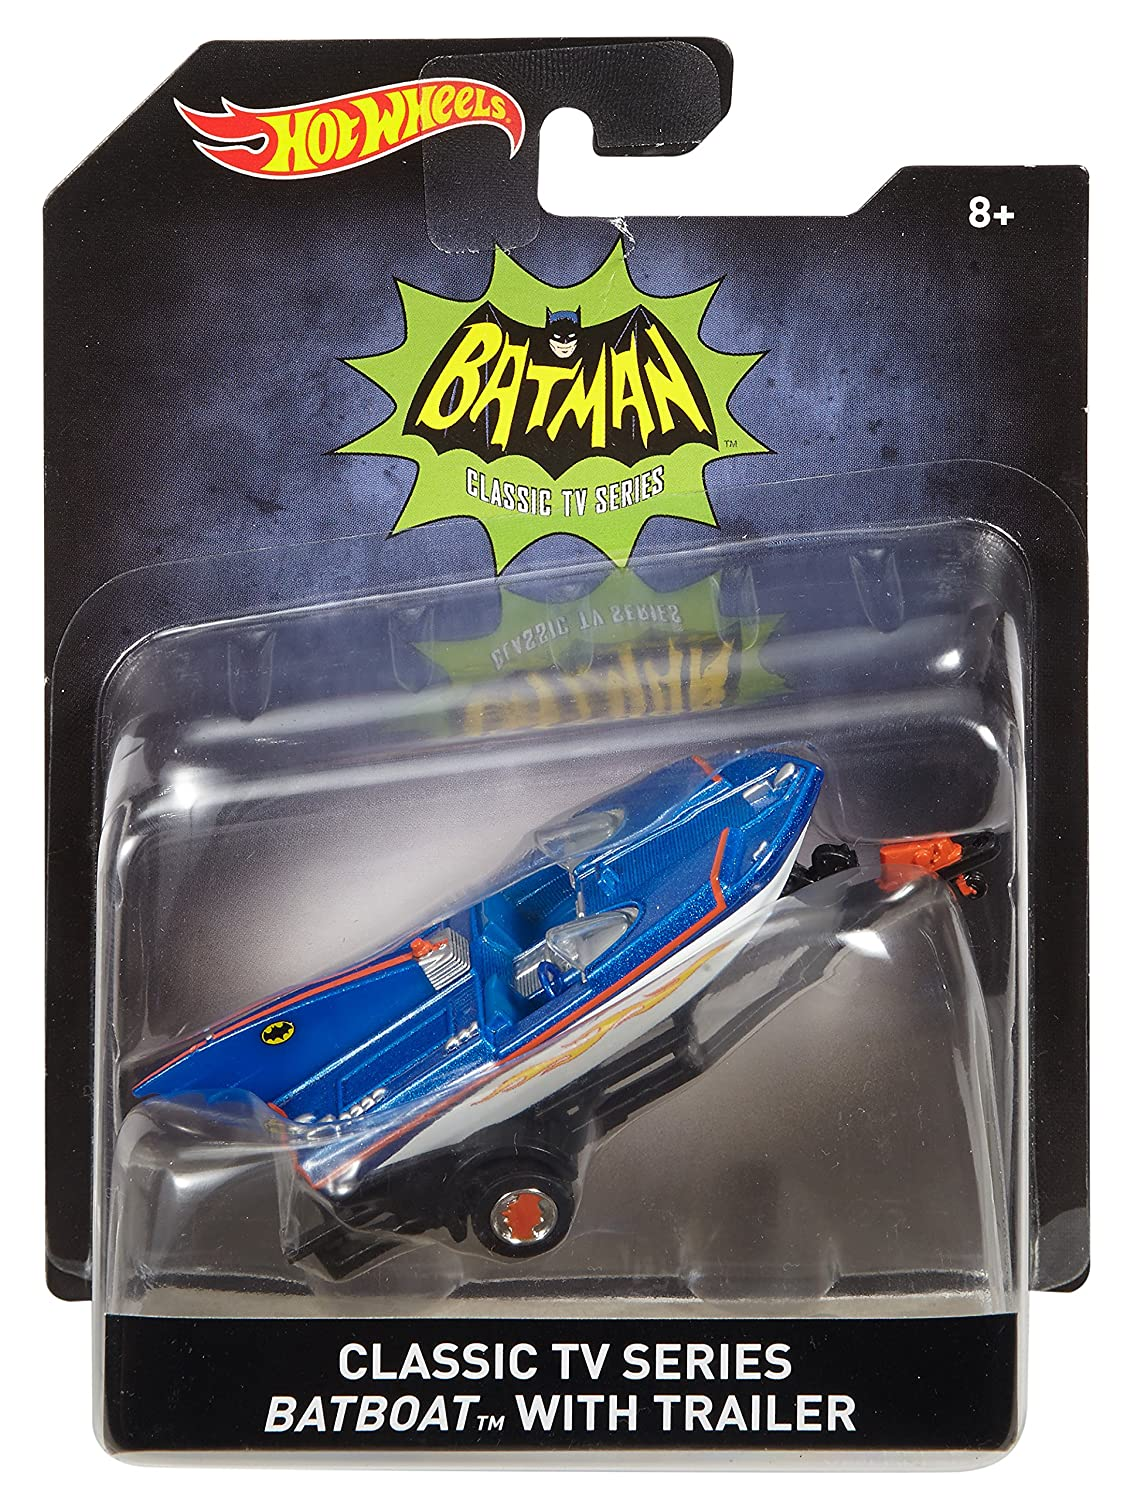 Amazon.com: Hot Wheels Classic TV Series Batboat with Trailer ...